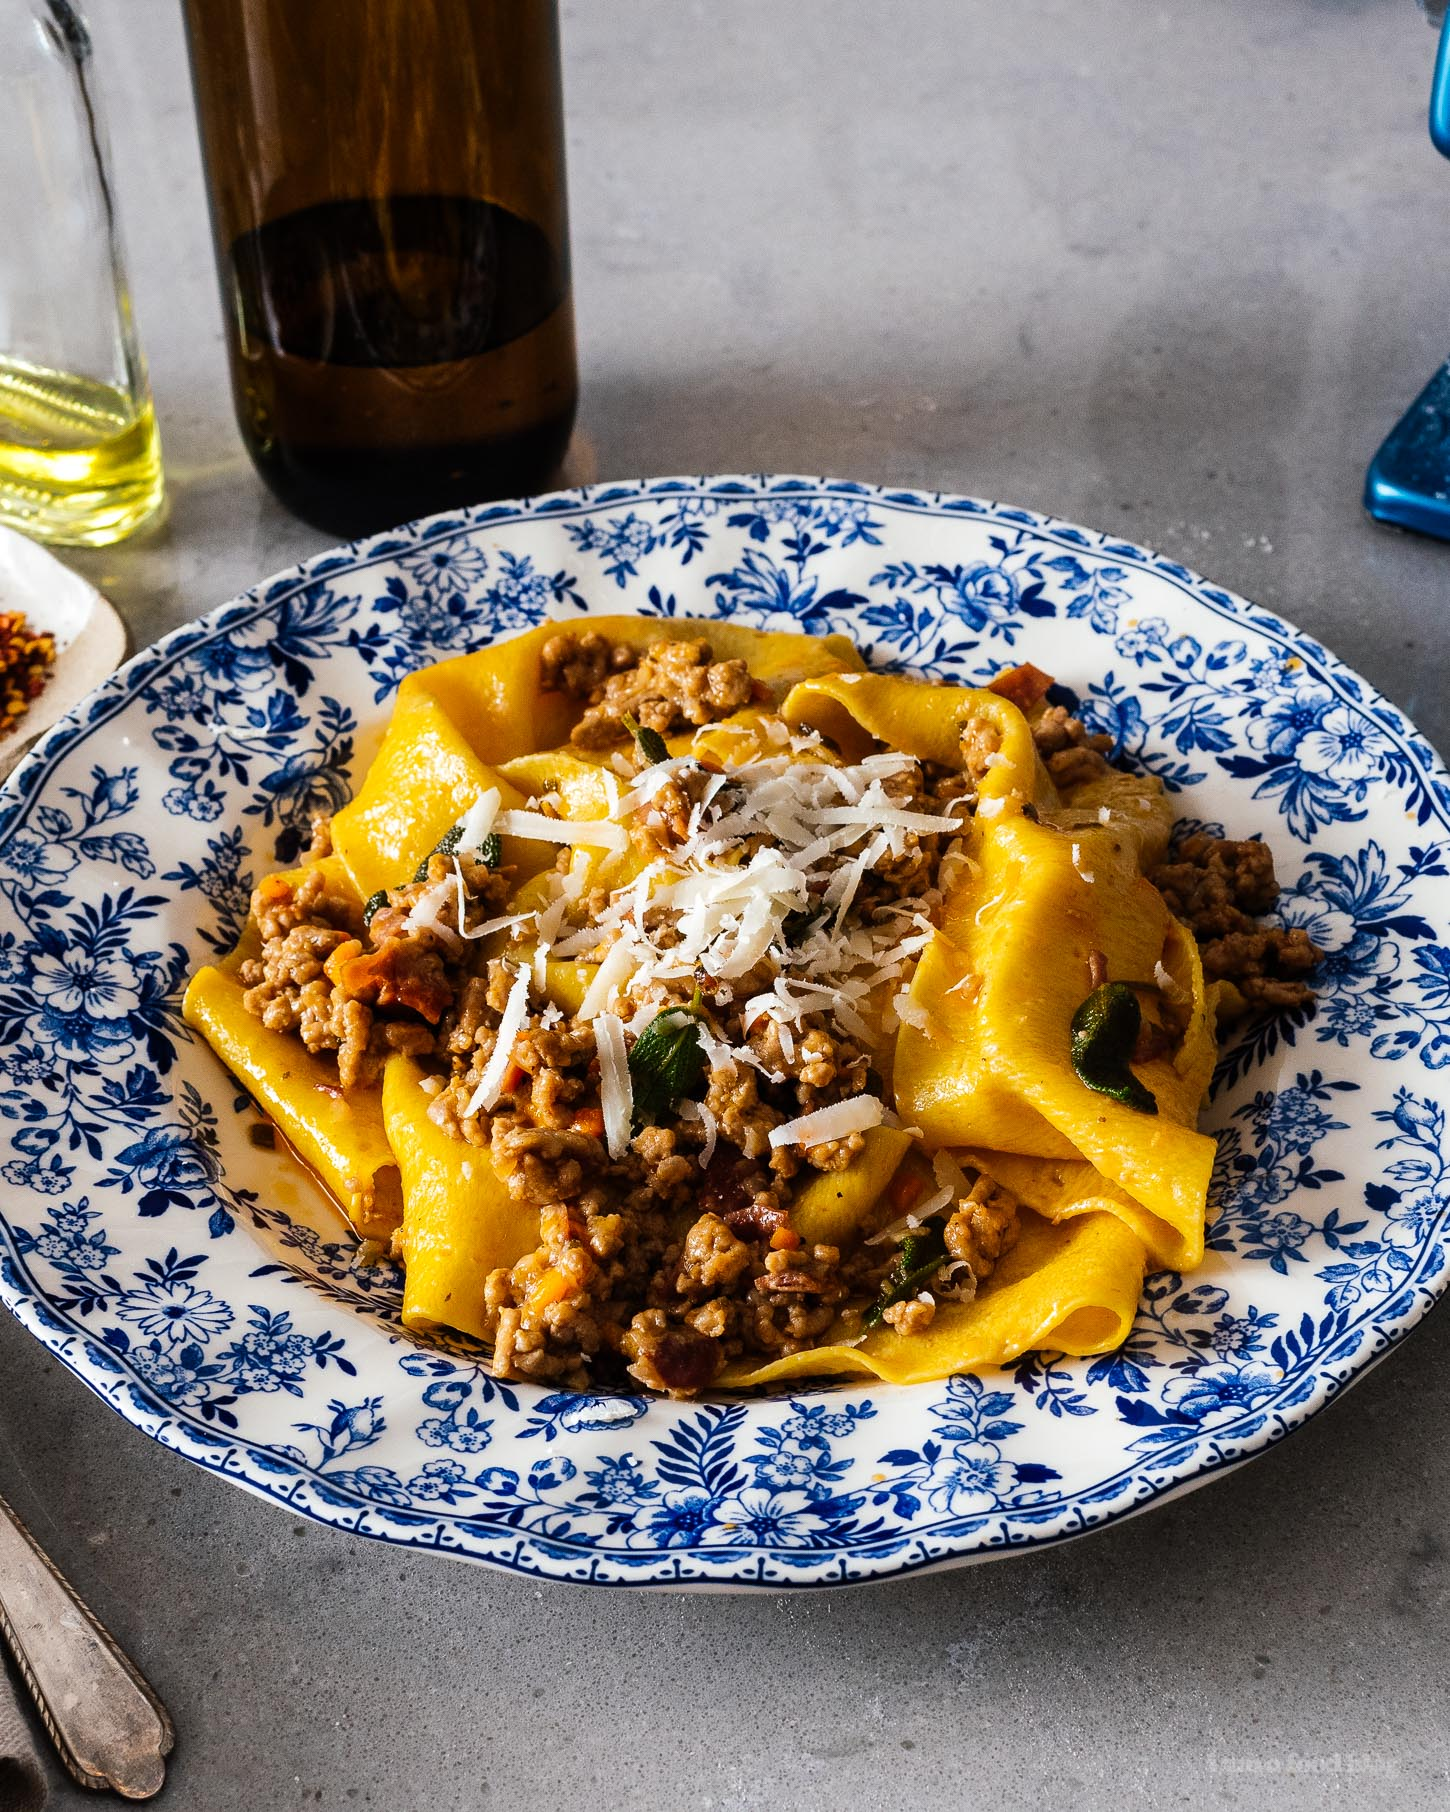 This easy ragu bolognese is perfect for weeknights. Your house will smell like the best Italian kitchens as all the stress from the day just falls away. #bolognese #pasta #weeknightitalian #easyrecipes | www.iamafoodblog.com